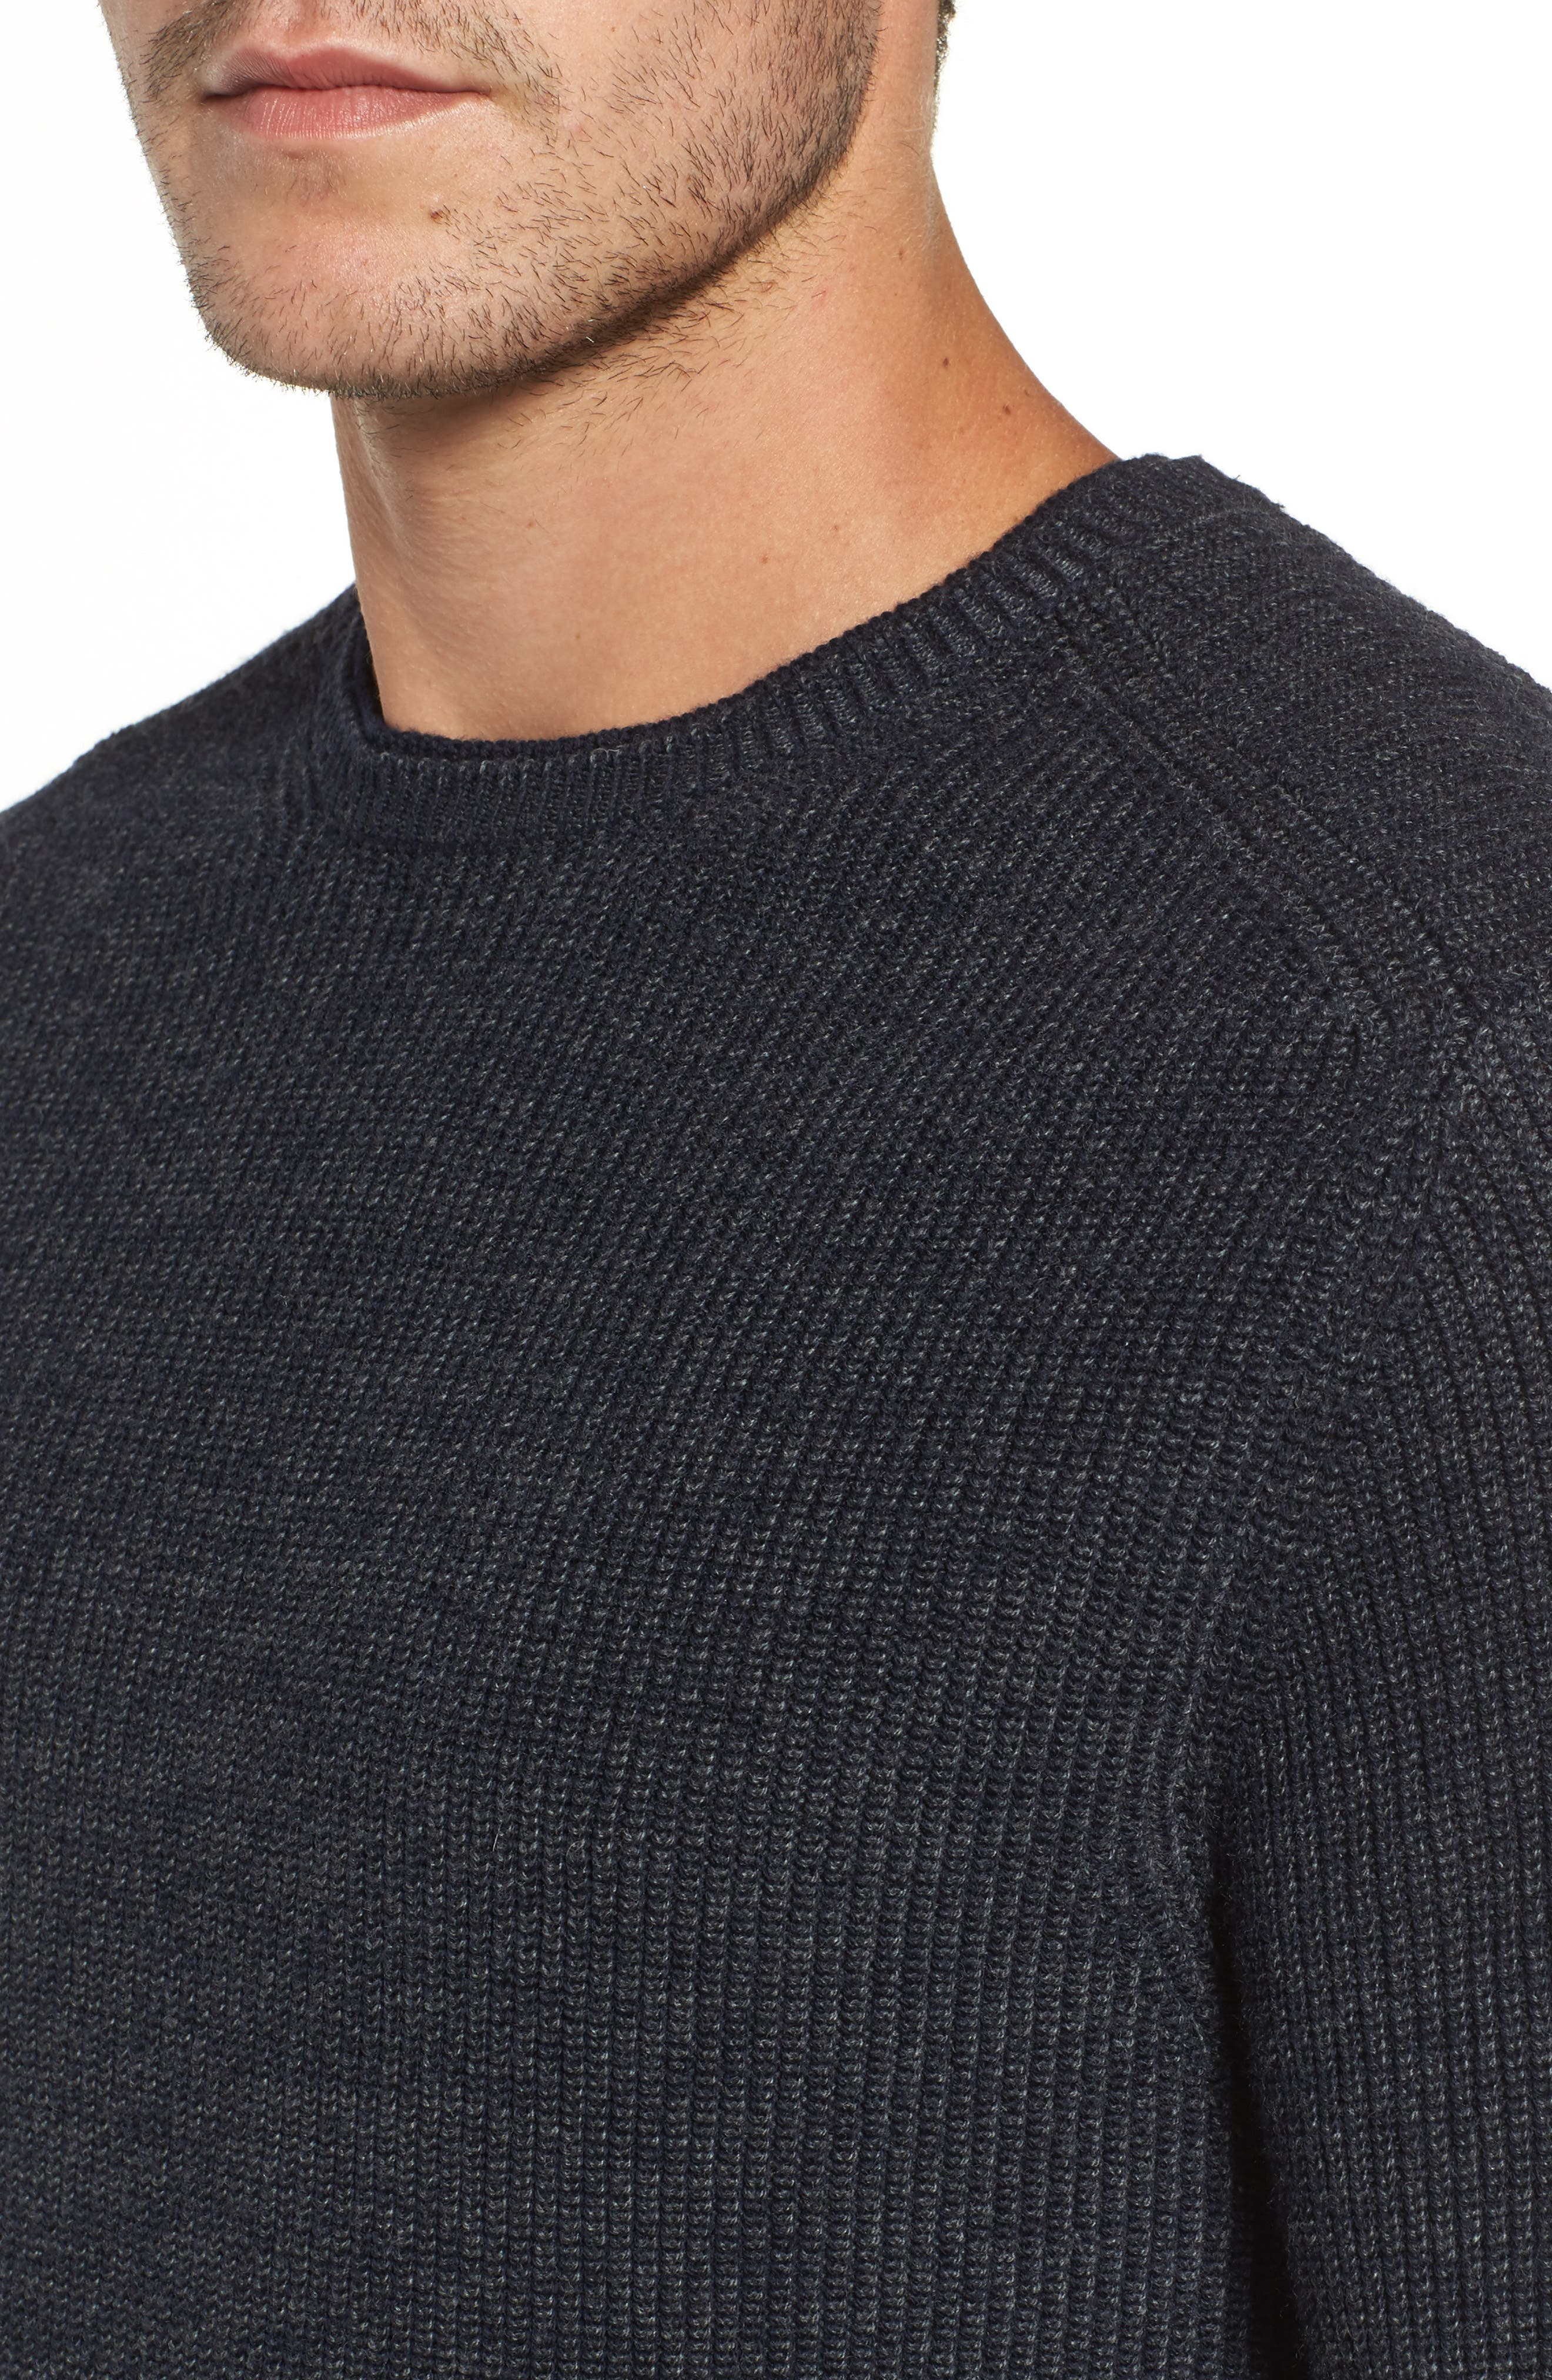 Whalers Bay Ribbed Merino Wool Sweater,                             Alternate thumbnail 4, color,                             470